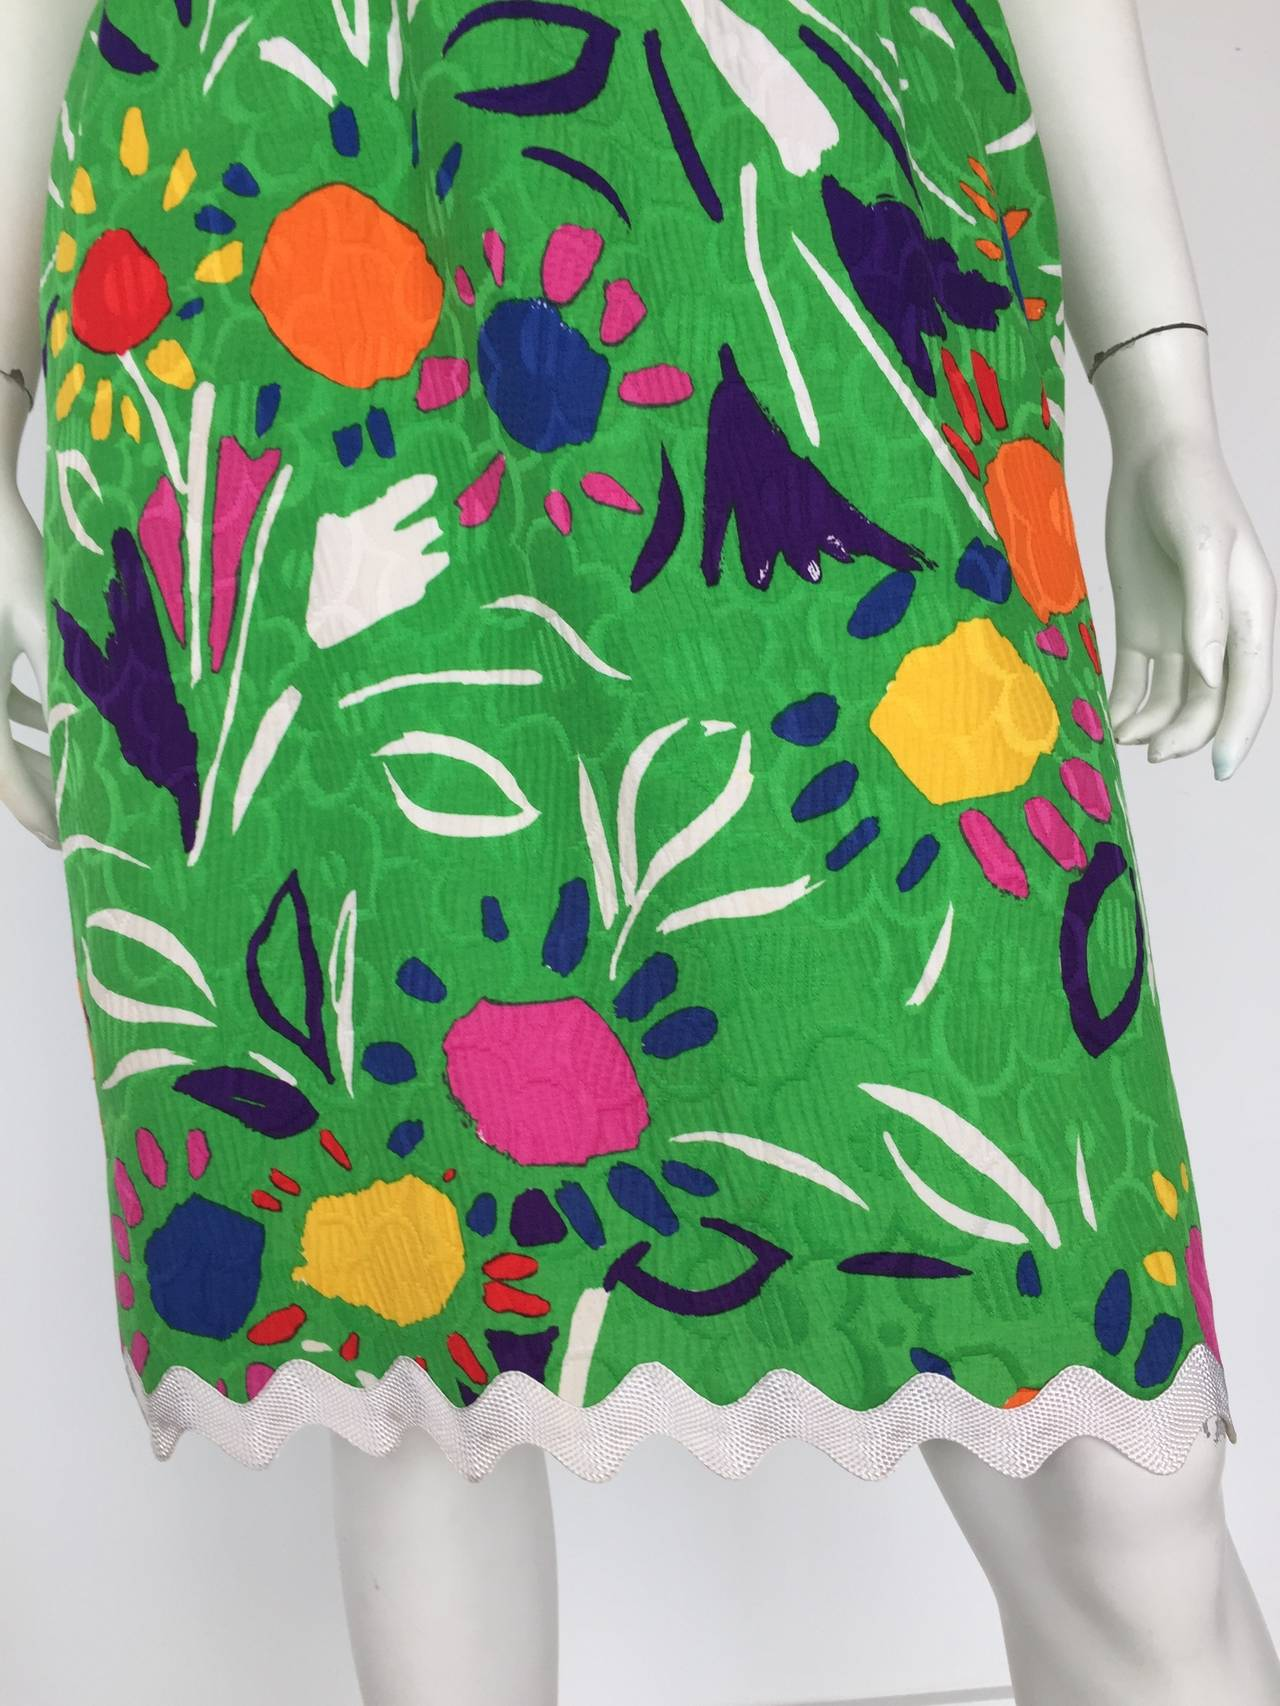 Women's Bill Blass Sleeveless Cotton Dress Size 10. For Sale